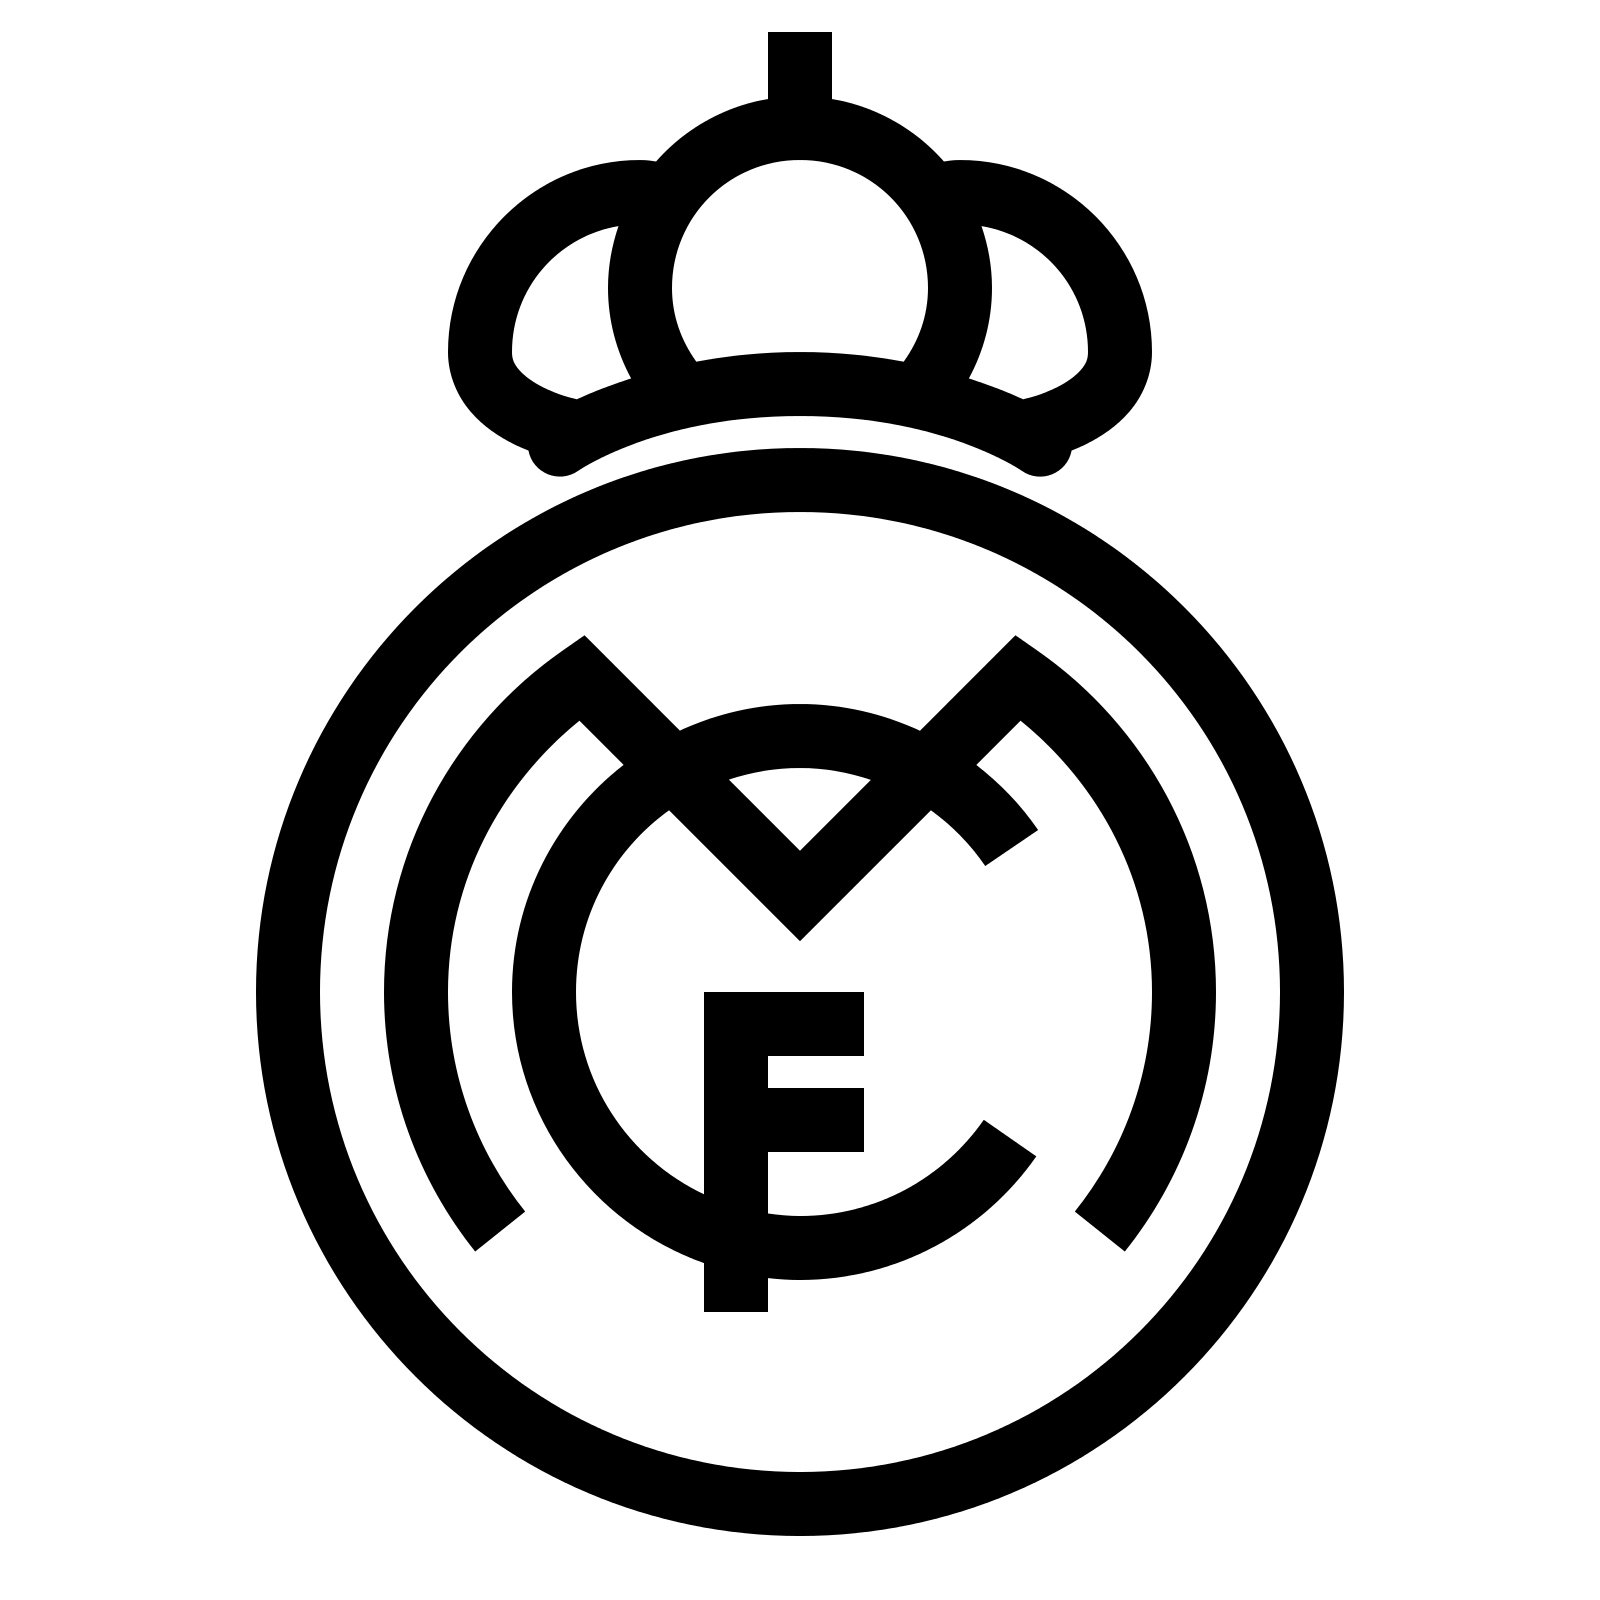 Real madrid logo real madrid symbol meaning history and evolution real madrid symbol biocorpaavc Images